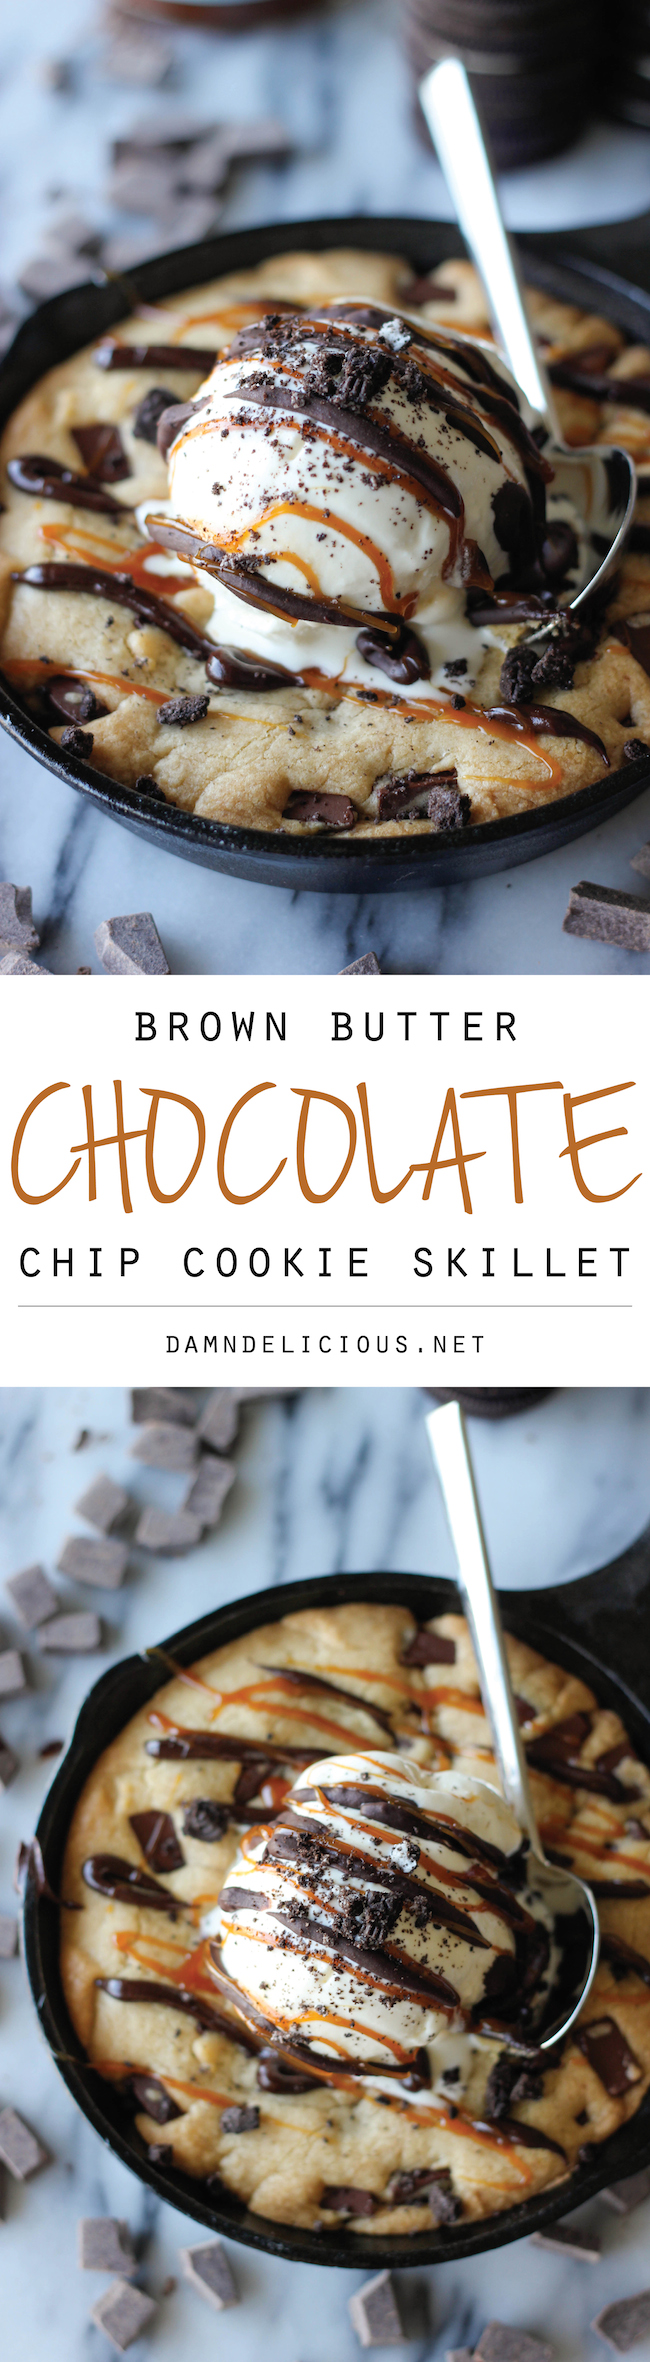 """Brown Butter Chocolate Chip Cookie Skillet (""""Pizookie"""") - No need to go to BJ's anymore for your pizookie cravings!"""